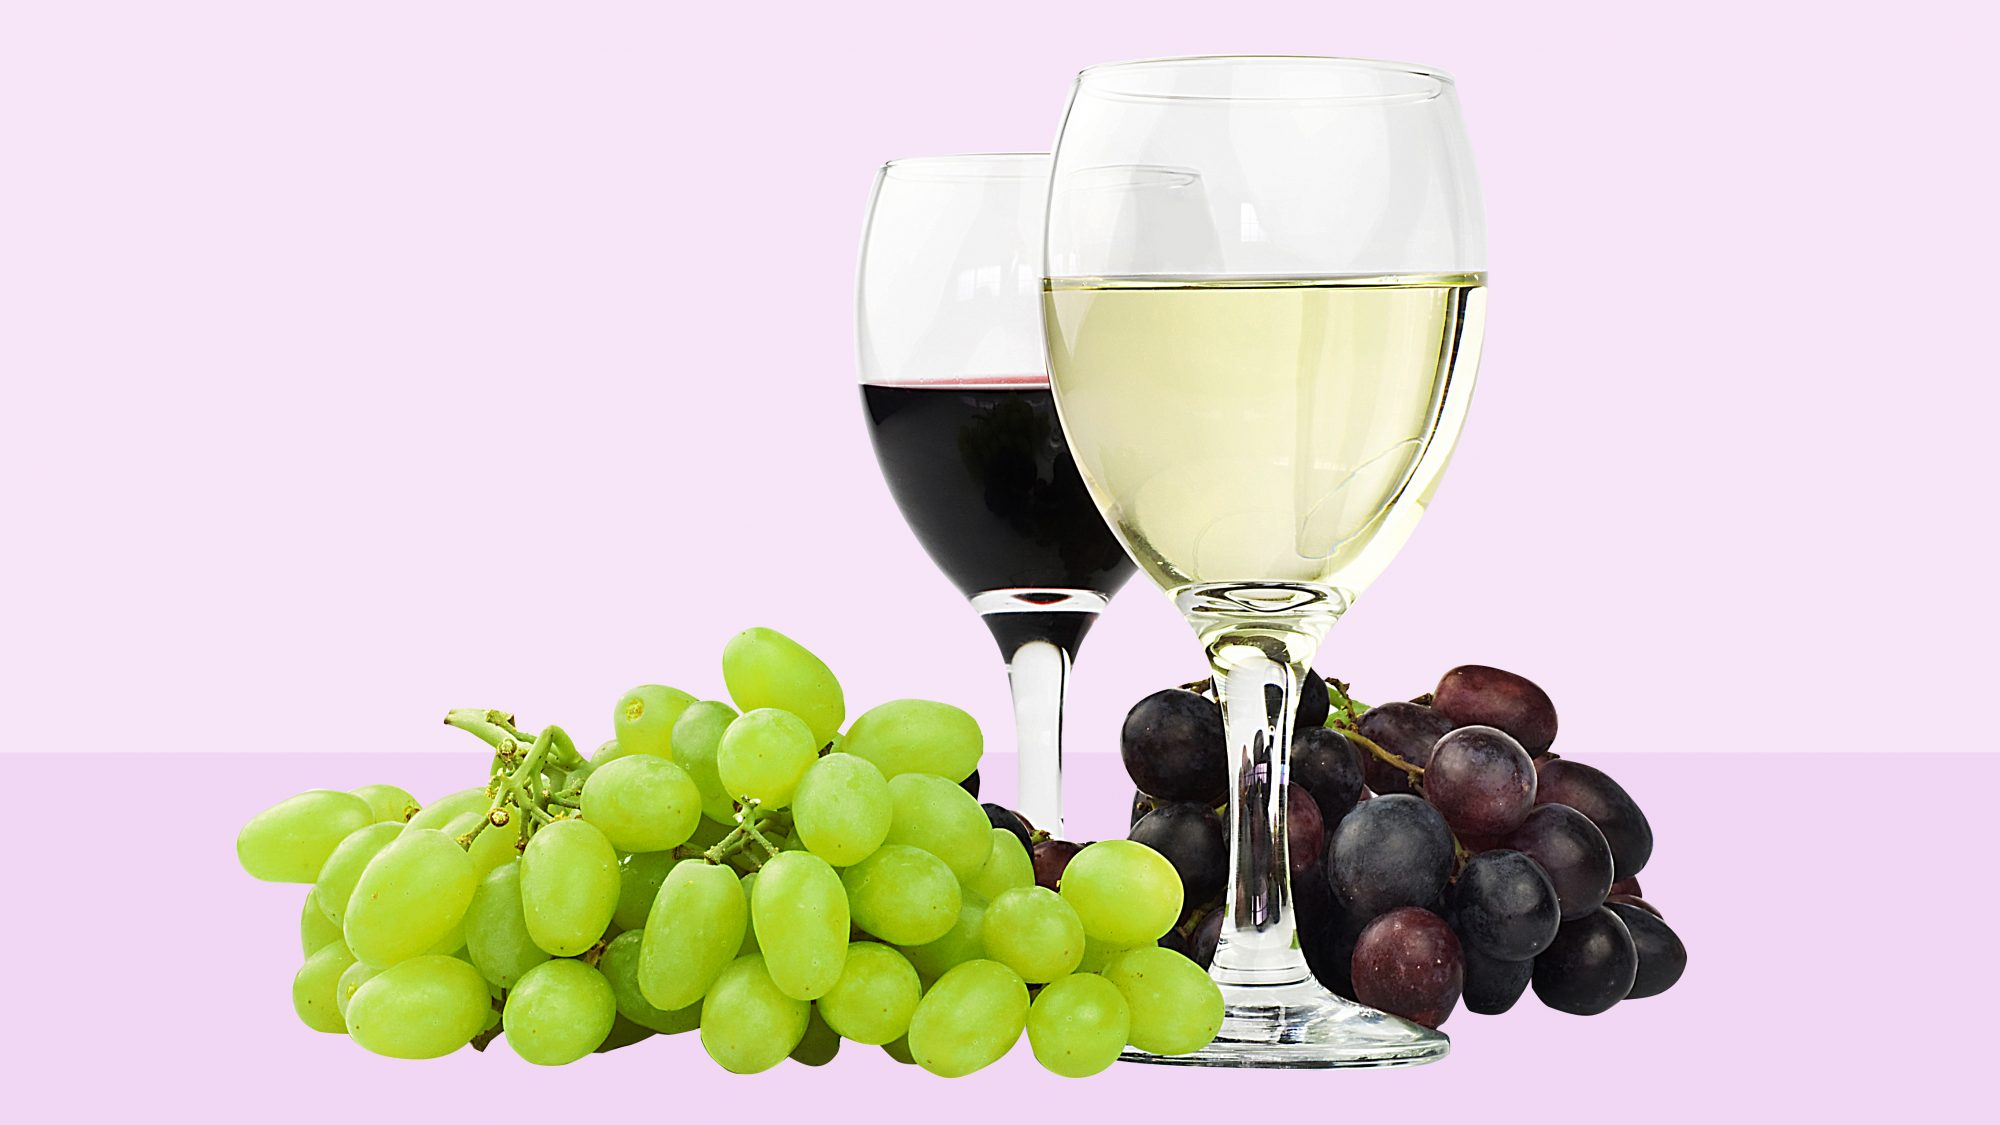 glasses of red and white wine, with grapes